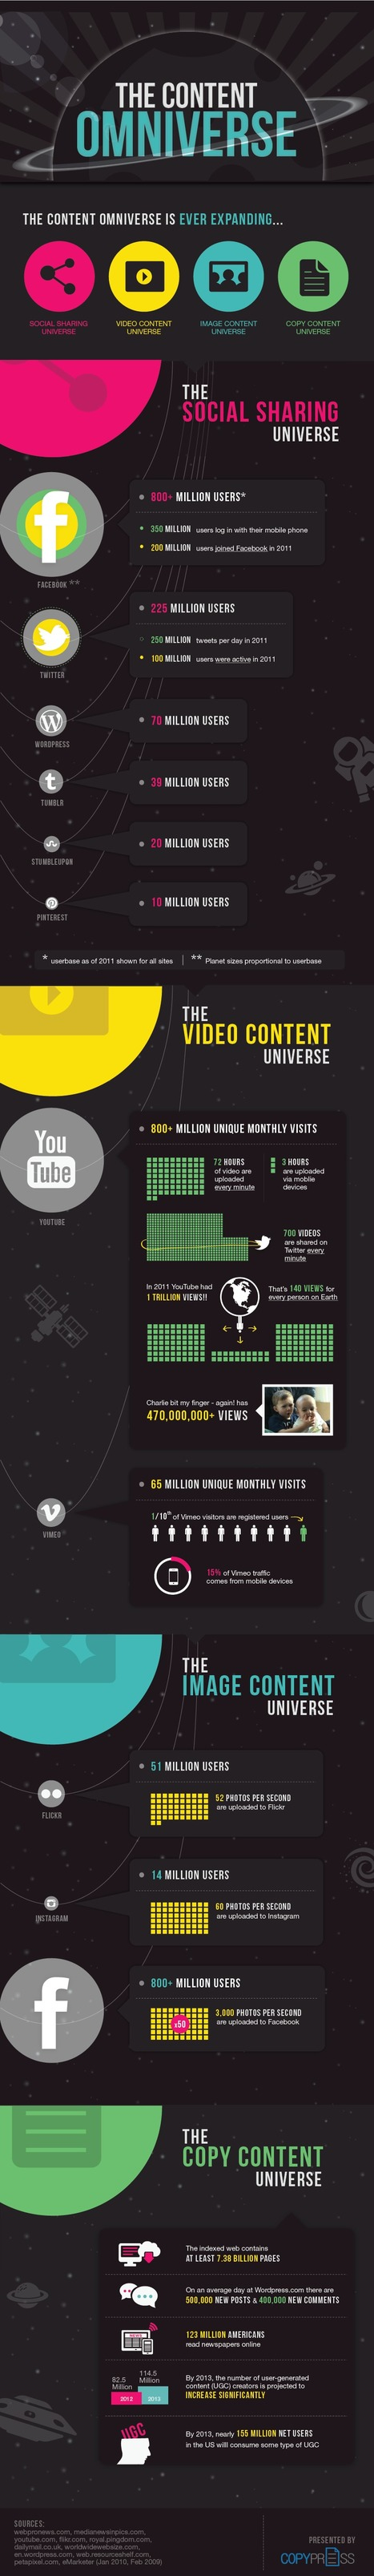 How Content is Written, Shared, Captured on Video, and Photographed [Infographic] | EPIC Infographic | Scoop.it